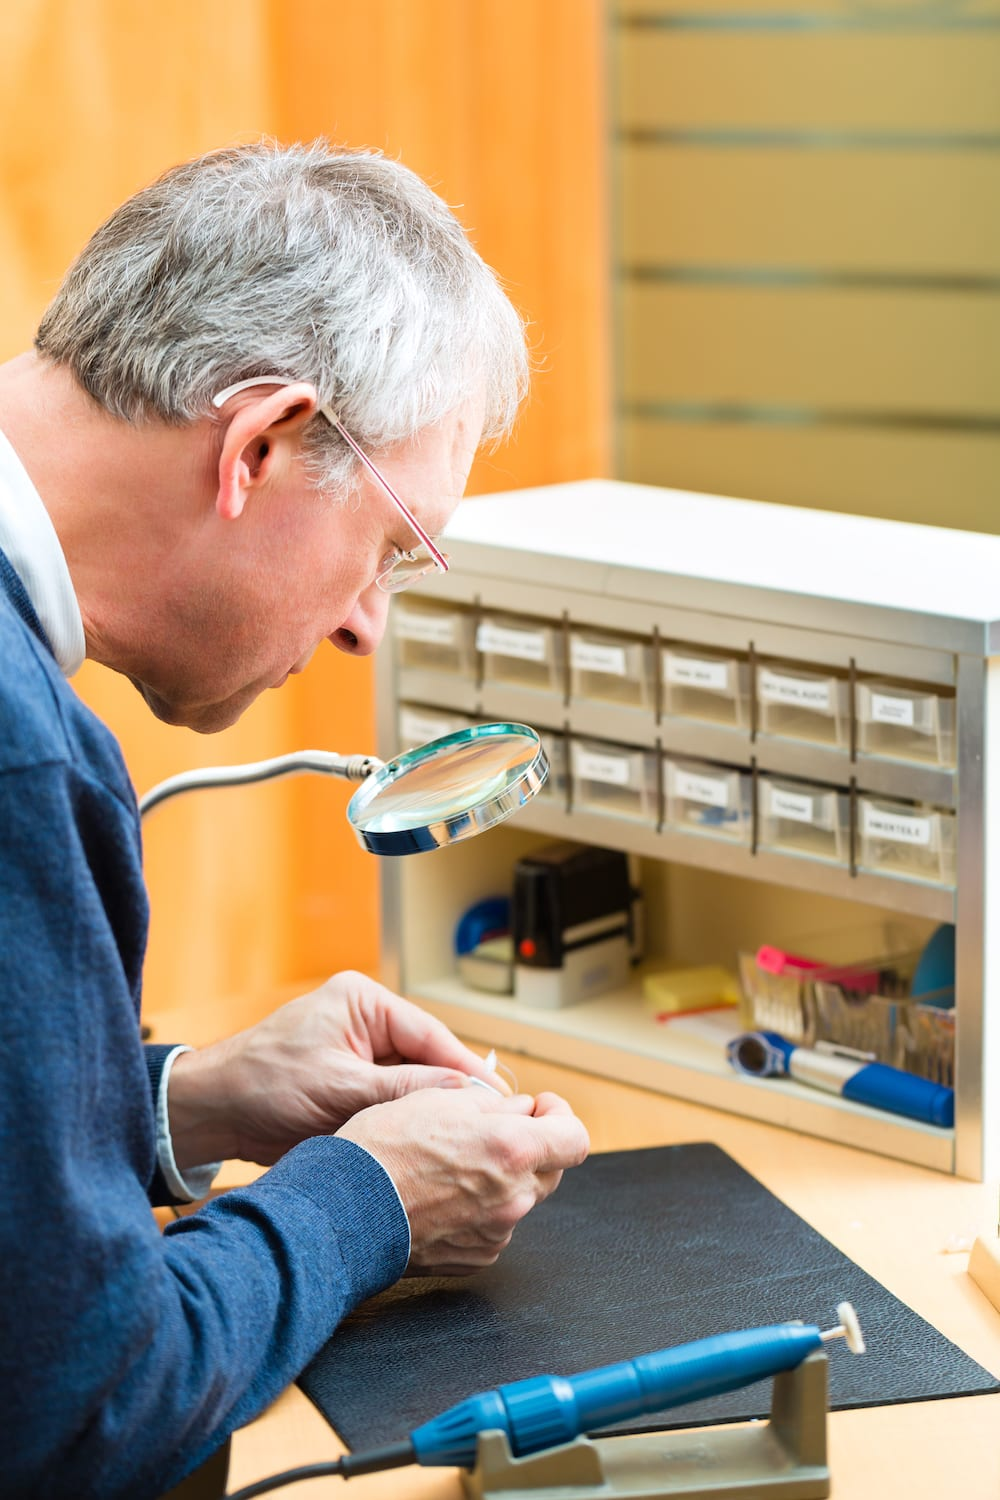 a hearing professional is repairing a hearing aid